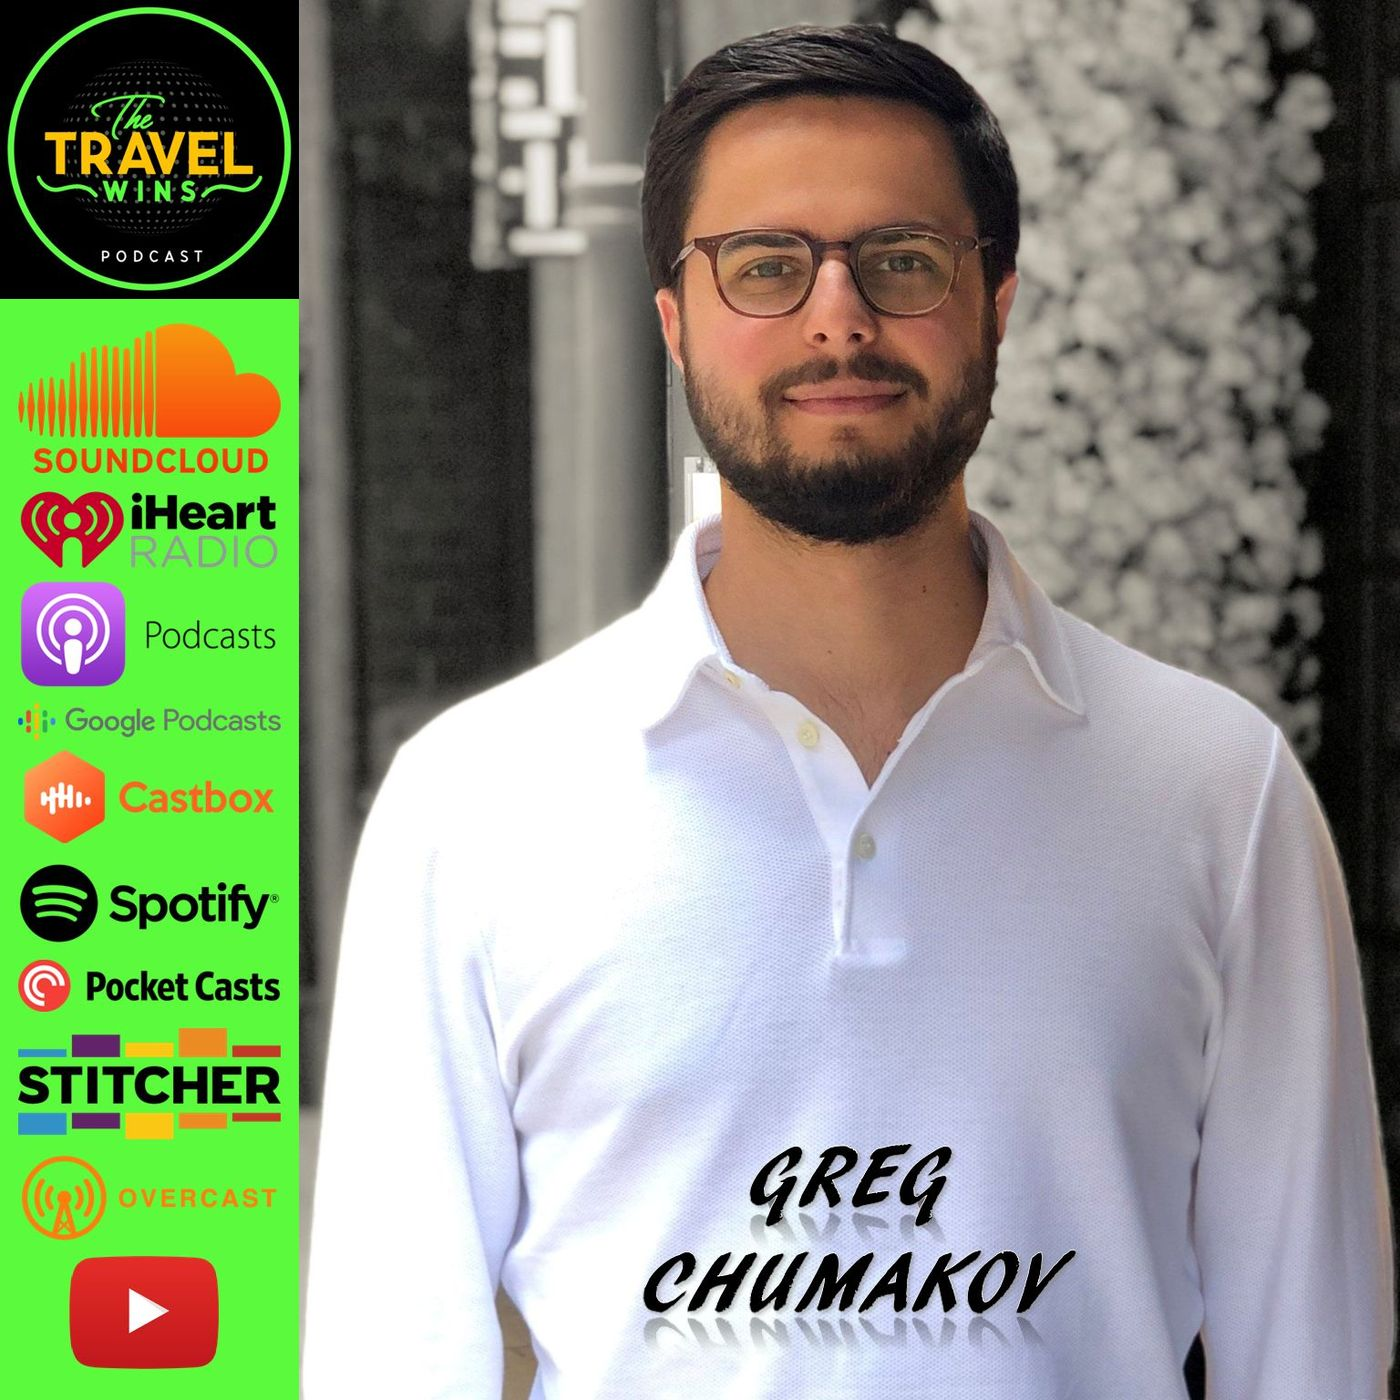 Greg Chumakov | millennial making a difference with Treedom co